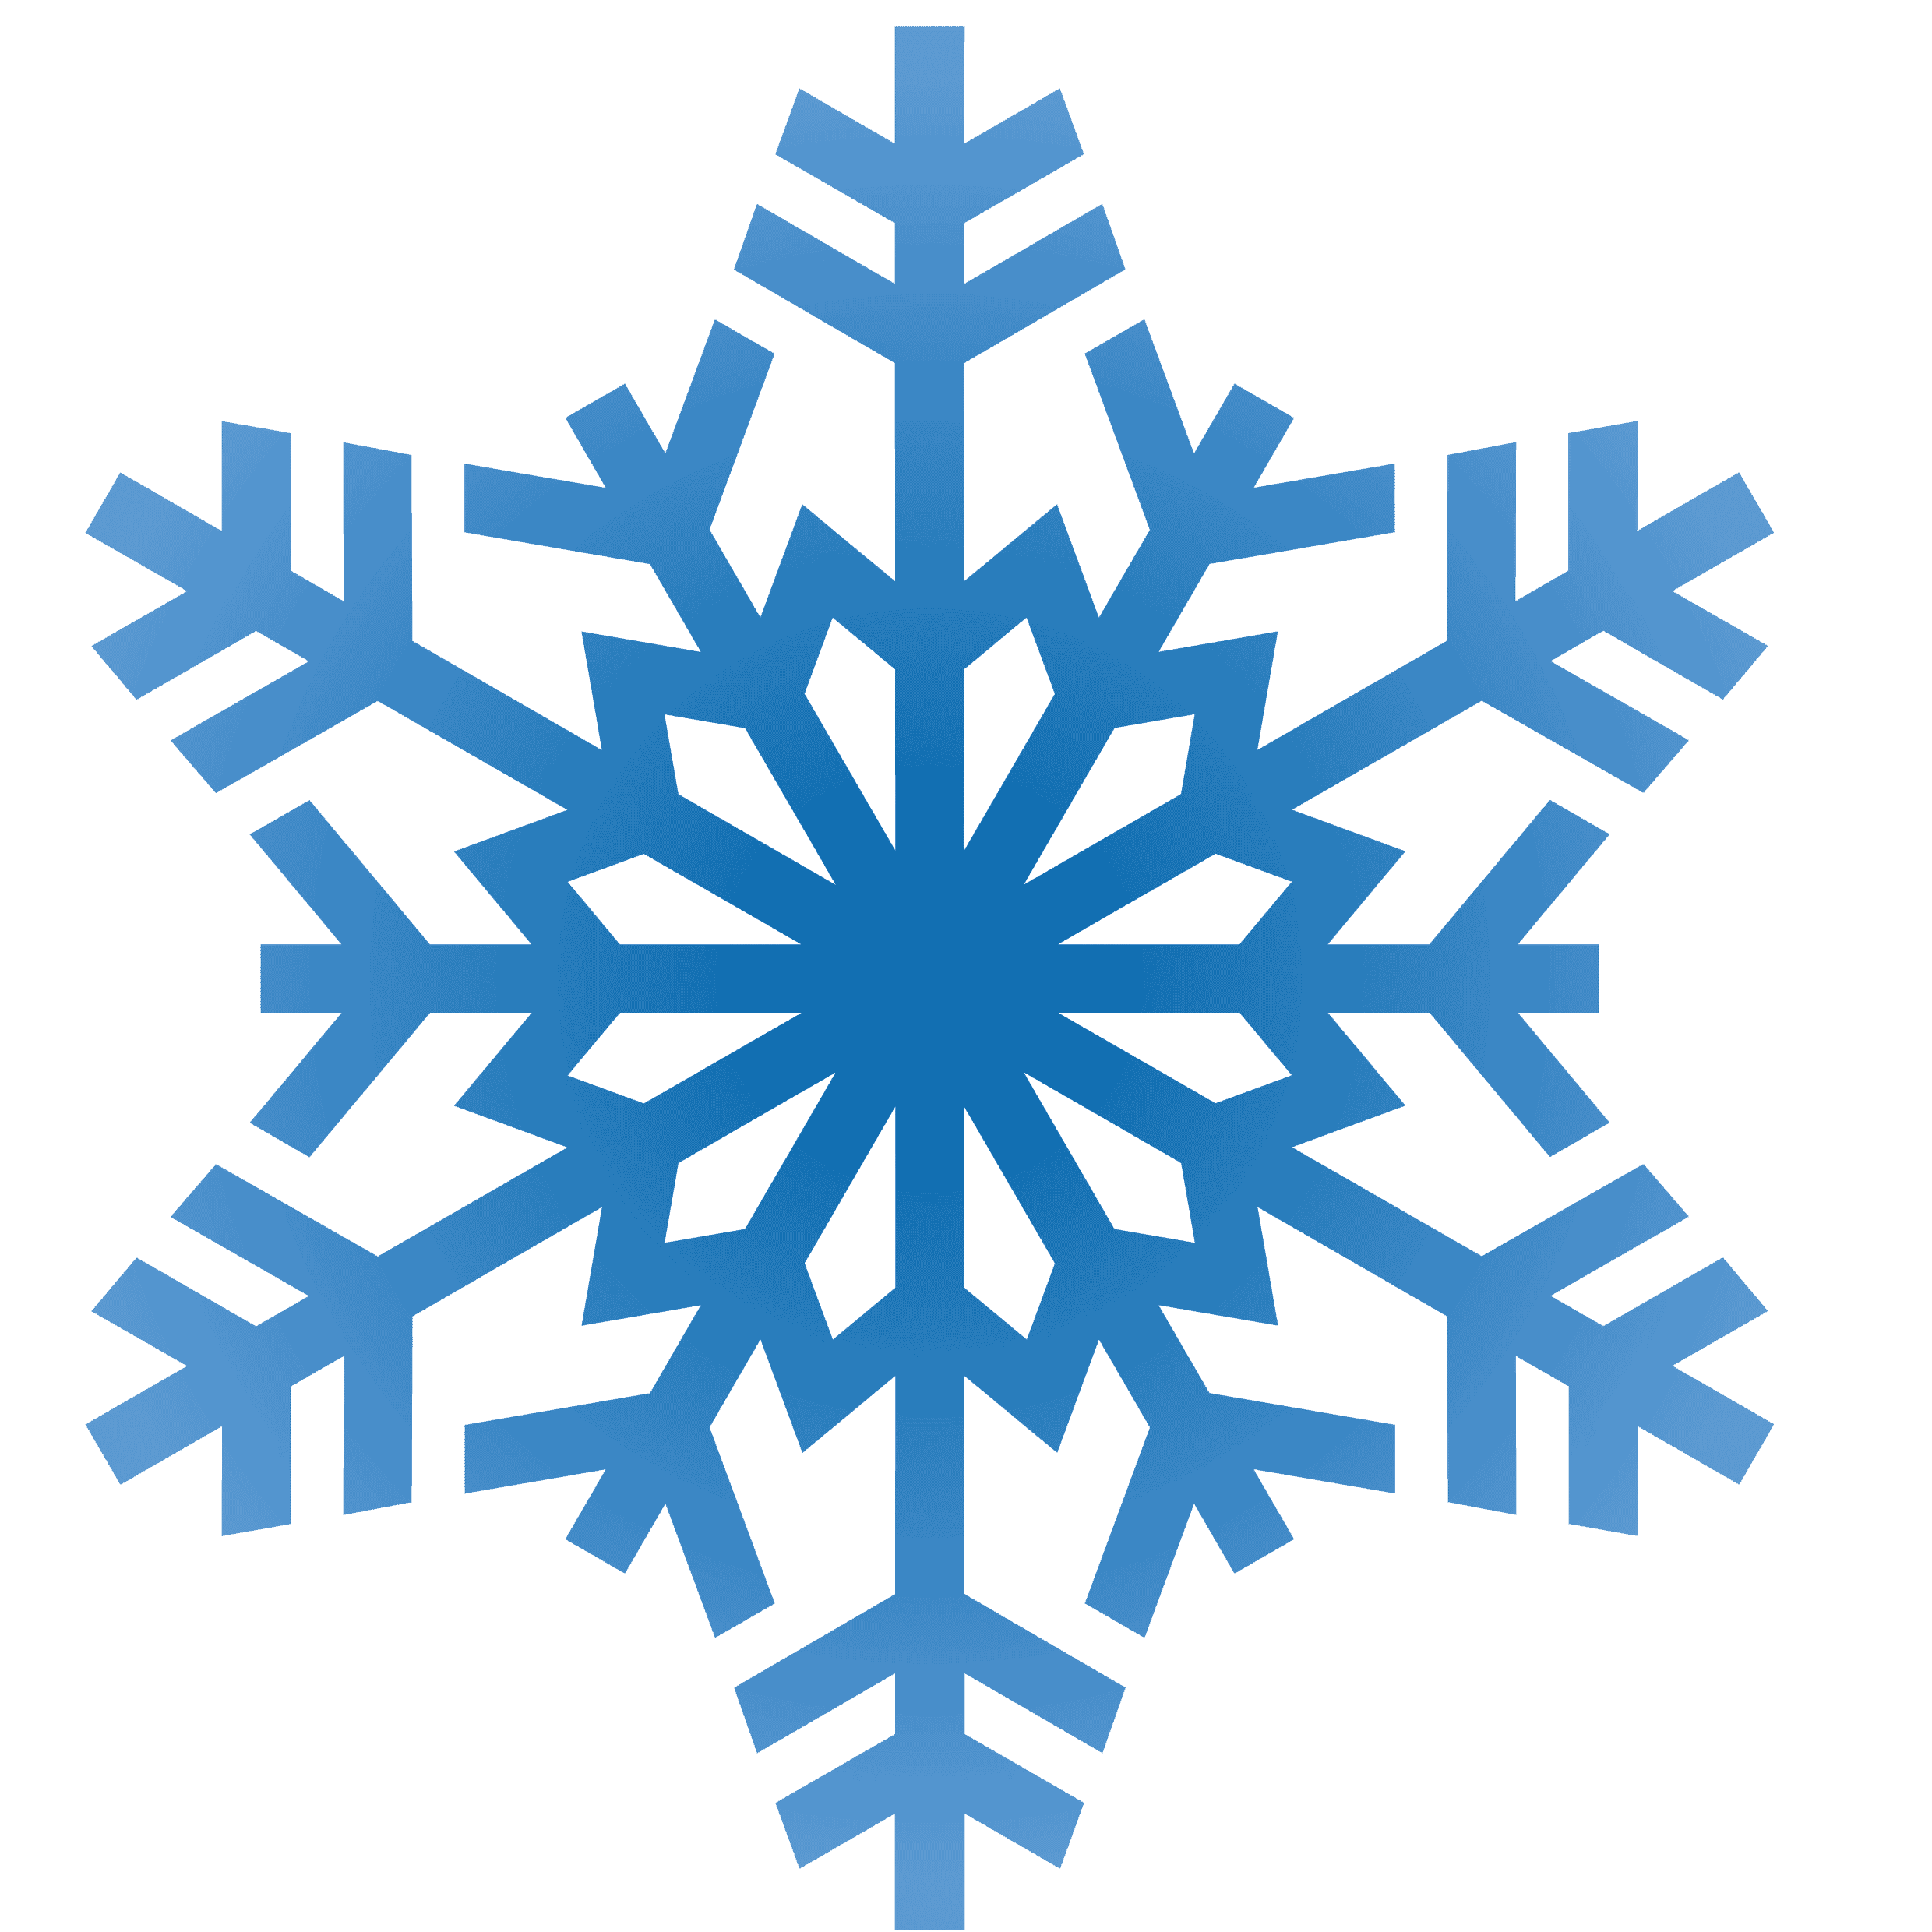 2480x2480 Snowflakes PNG Images Transparent Free Download